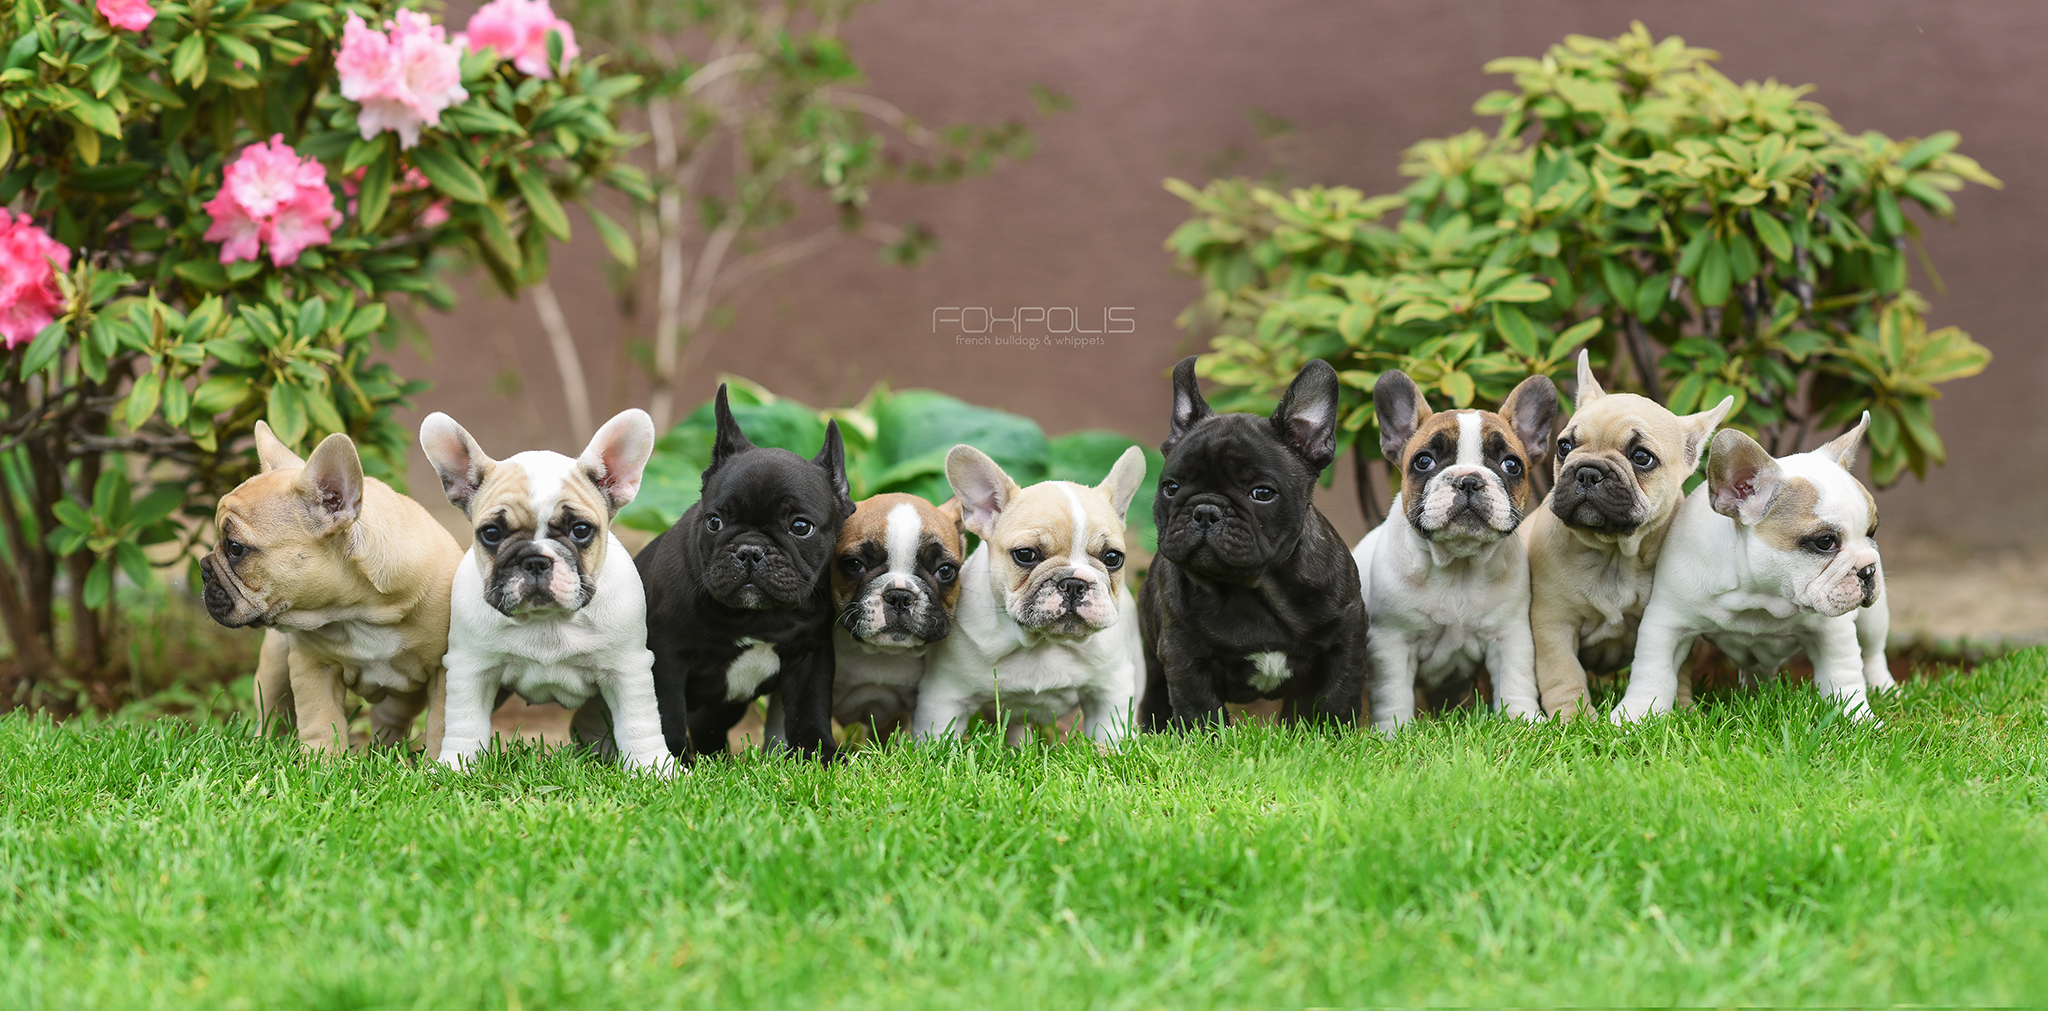 Fenchies, frenchies, frenchies :)